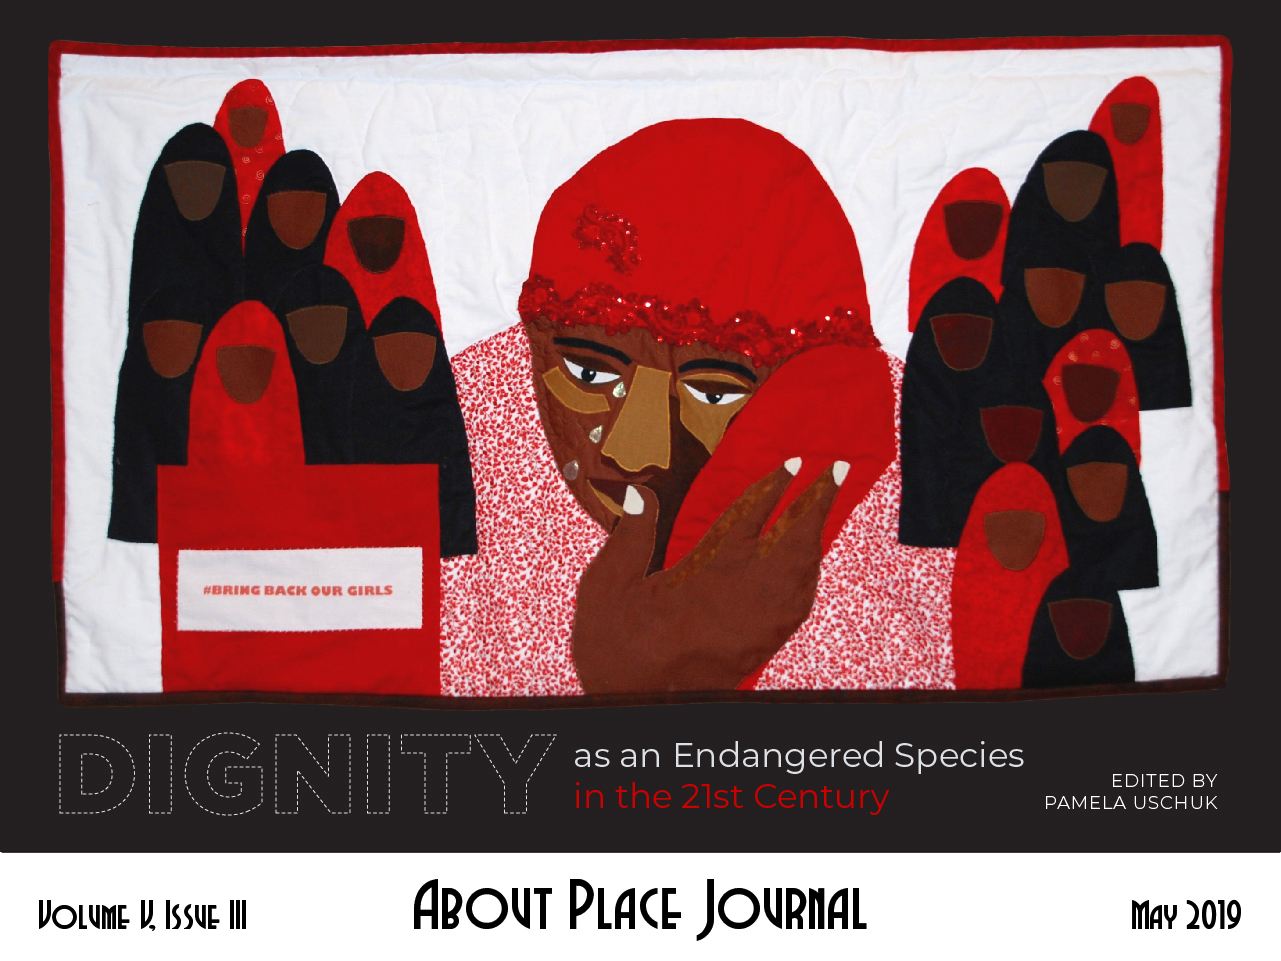 About Place Journal: Dignity as an Endangered Species